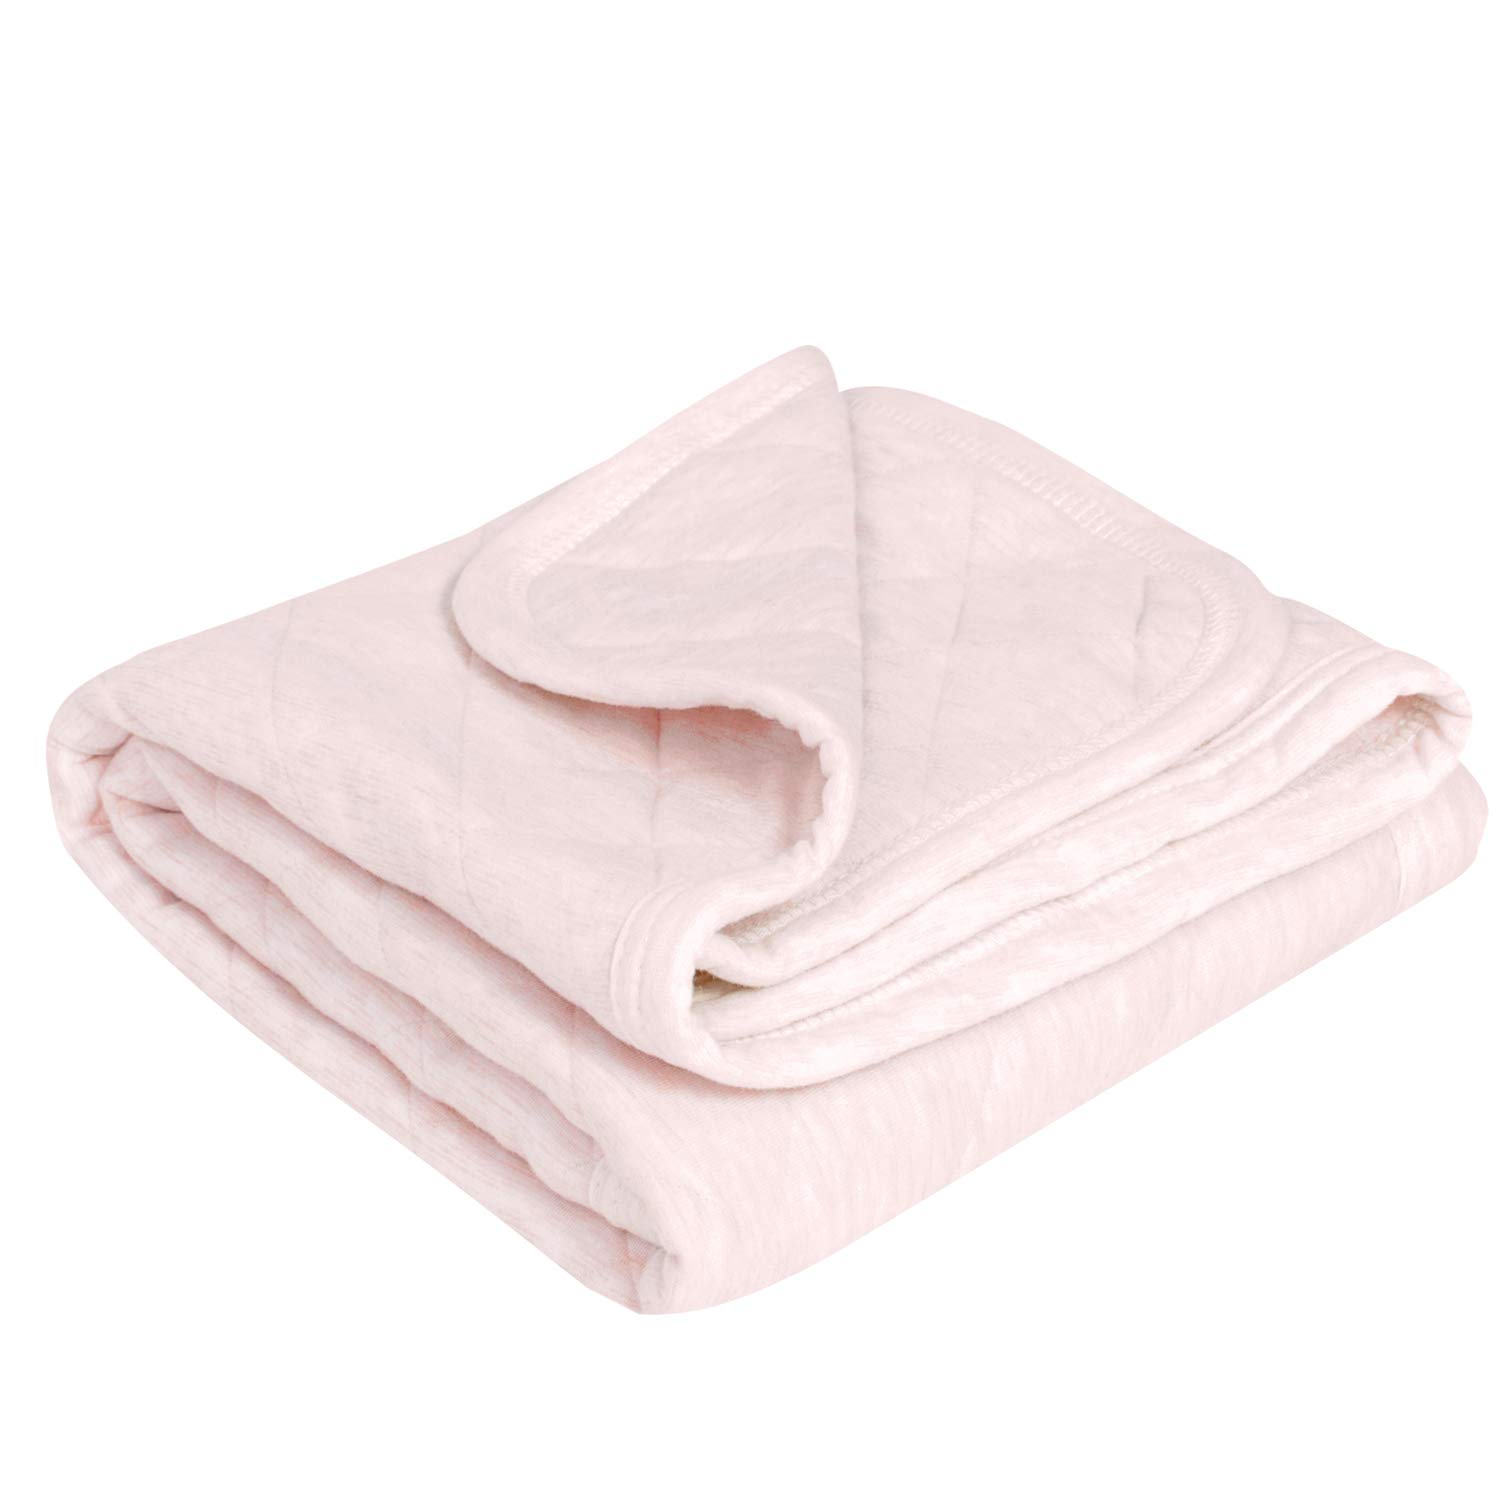 TILLYOU Allergy-Free Quilted Cotton Baby Blanket Lightweight Warm Toddler  Bed Crib Blanket for 44834b65a